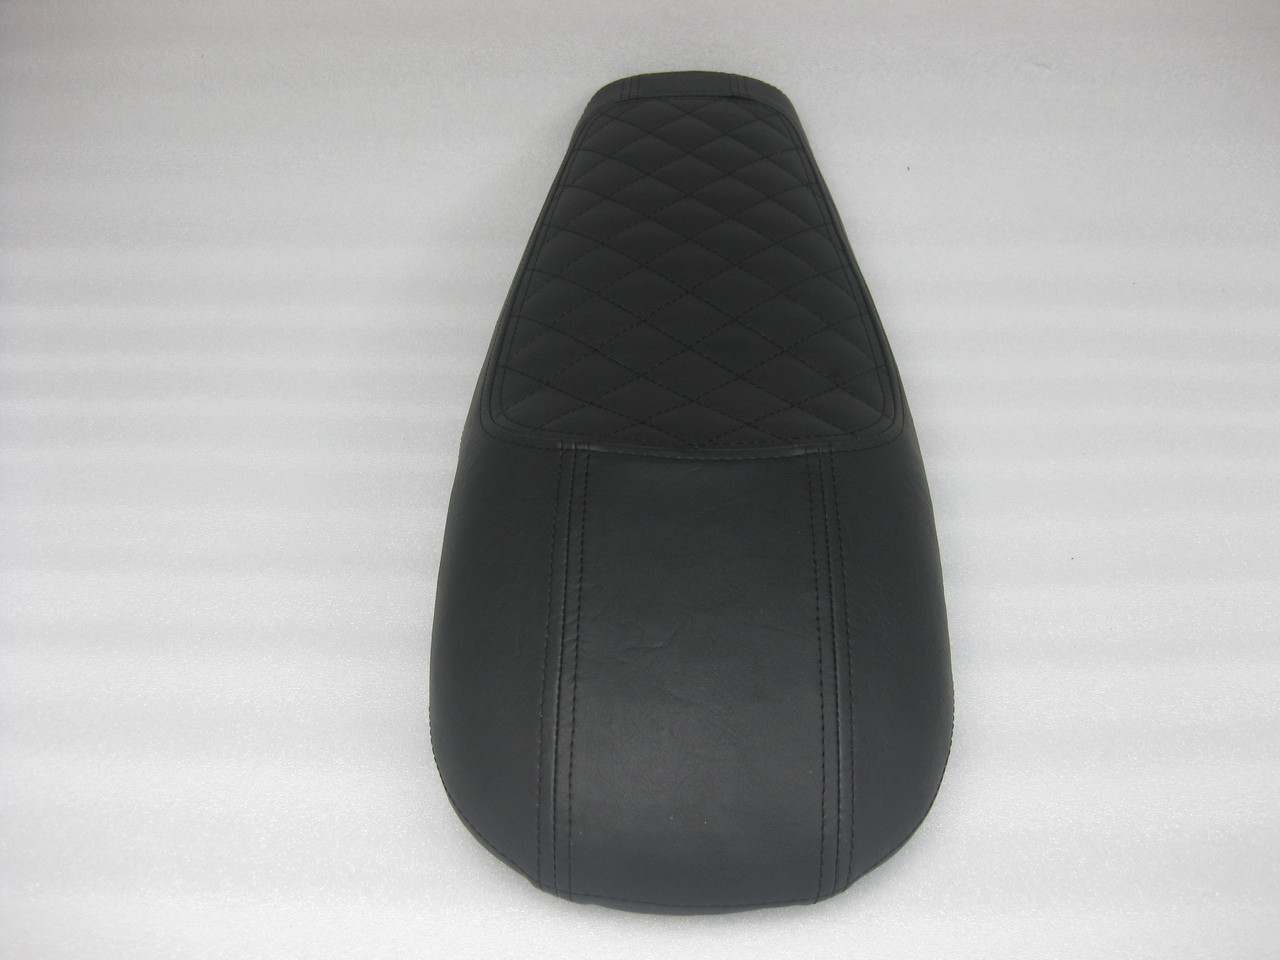 1979 - 1982 Honda CX500 Custom cafe racer complete seat with metal seat pan - #4377